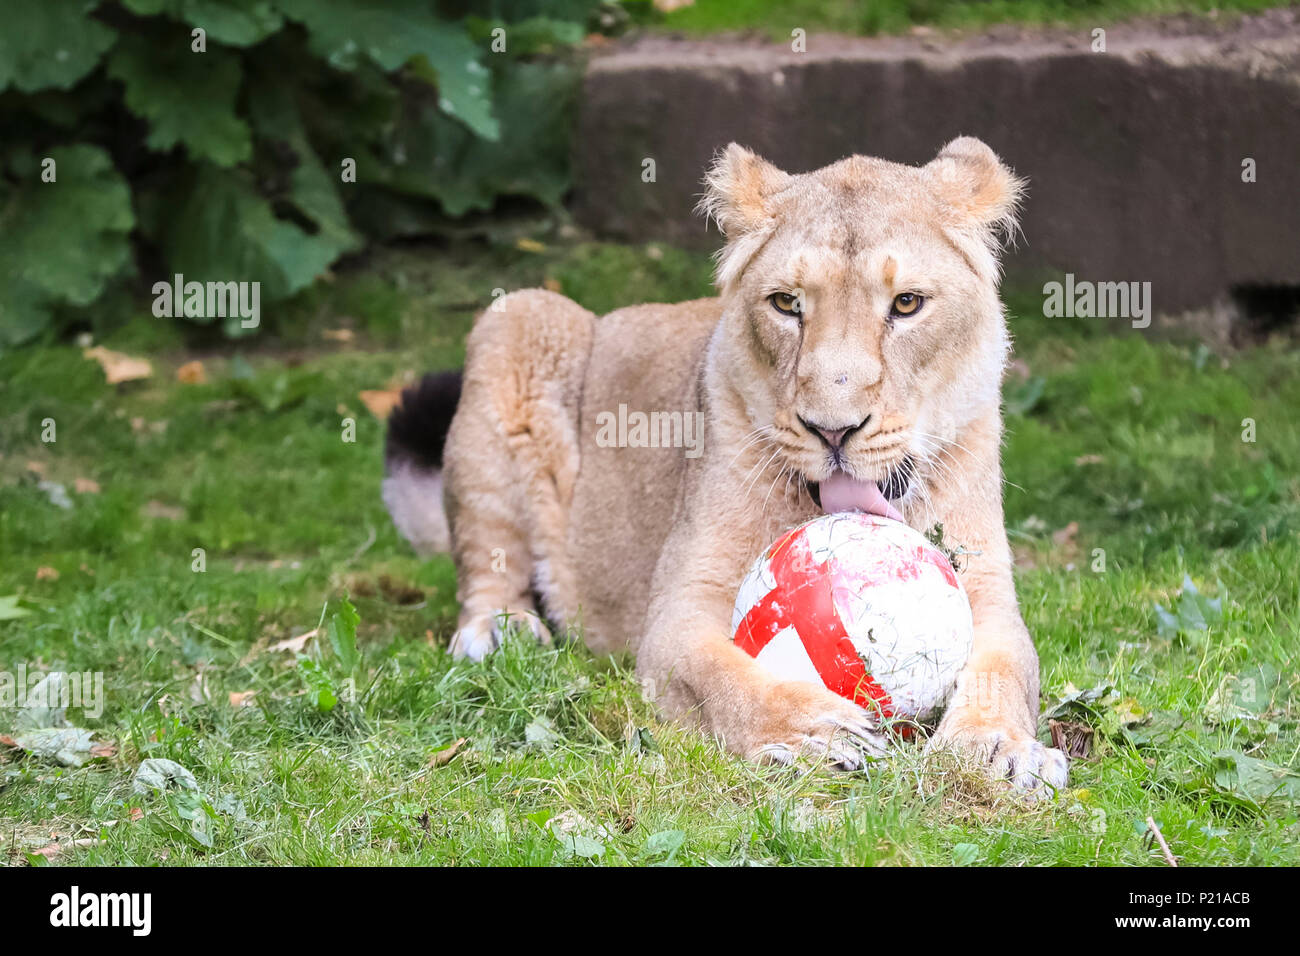 ZSL London Zoo, London, UK, 14th June 2018. Heidi shows her ball tackling skills. ZSL London Zoo's own three lions, Asiatic lion sisters Heidi, Indi and Rubi, show their support for England by practising their football skills ahead of the team's opening World Cup match in Russia. The three-a-side pride kicks off the day in the Land of Lions with their own football, an enrichment designed to encourage their natural skills and decorated with the England flag. Credit: Imageplotter News and Sports/Alamy Live News - Stock Image